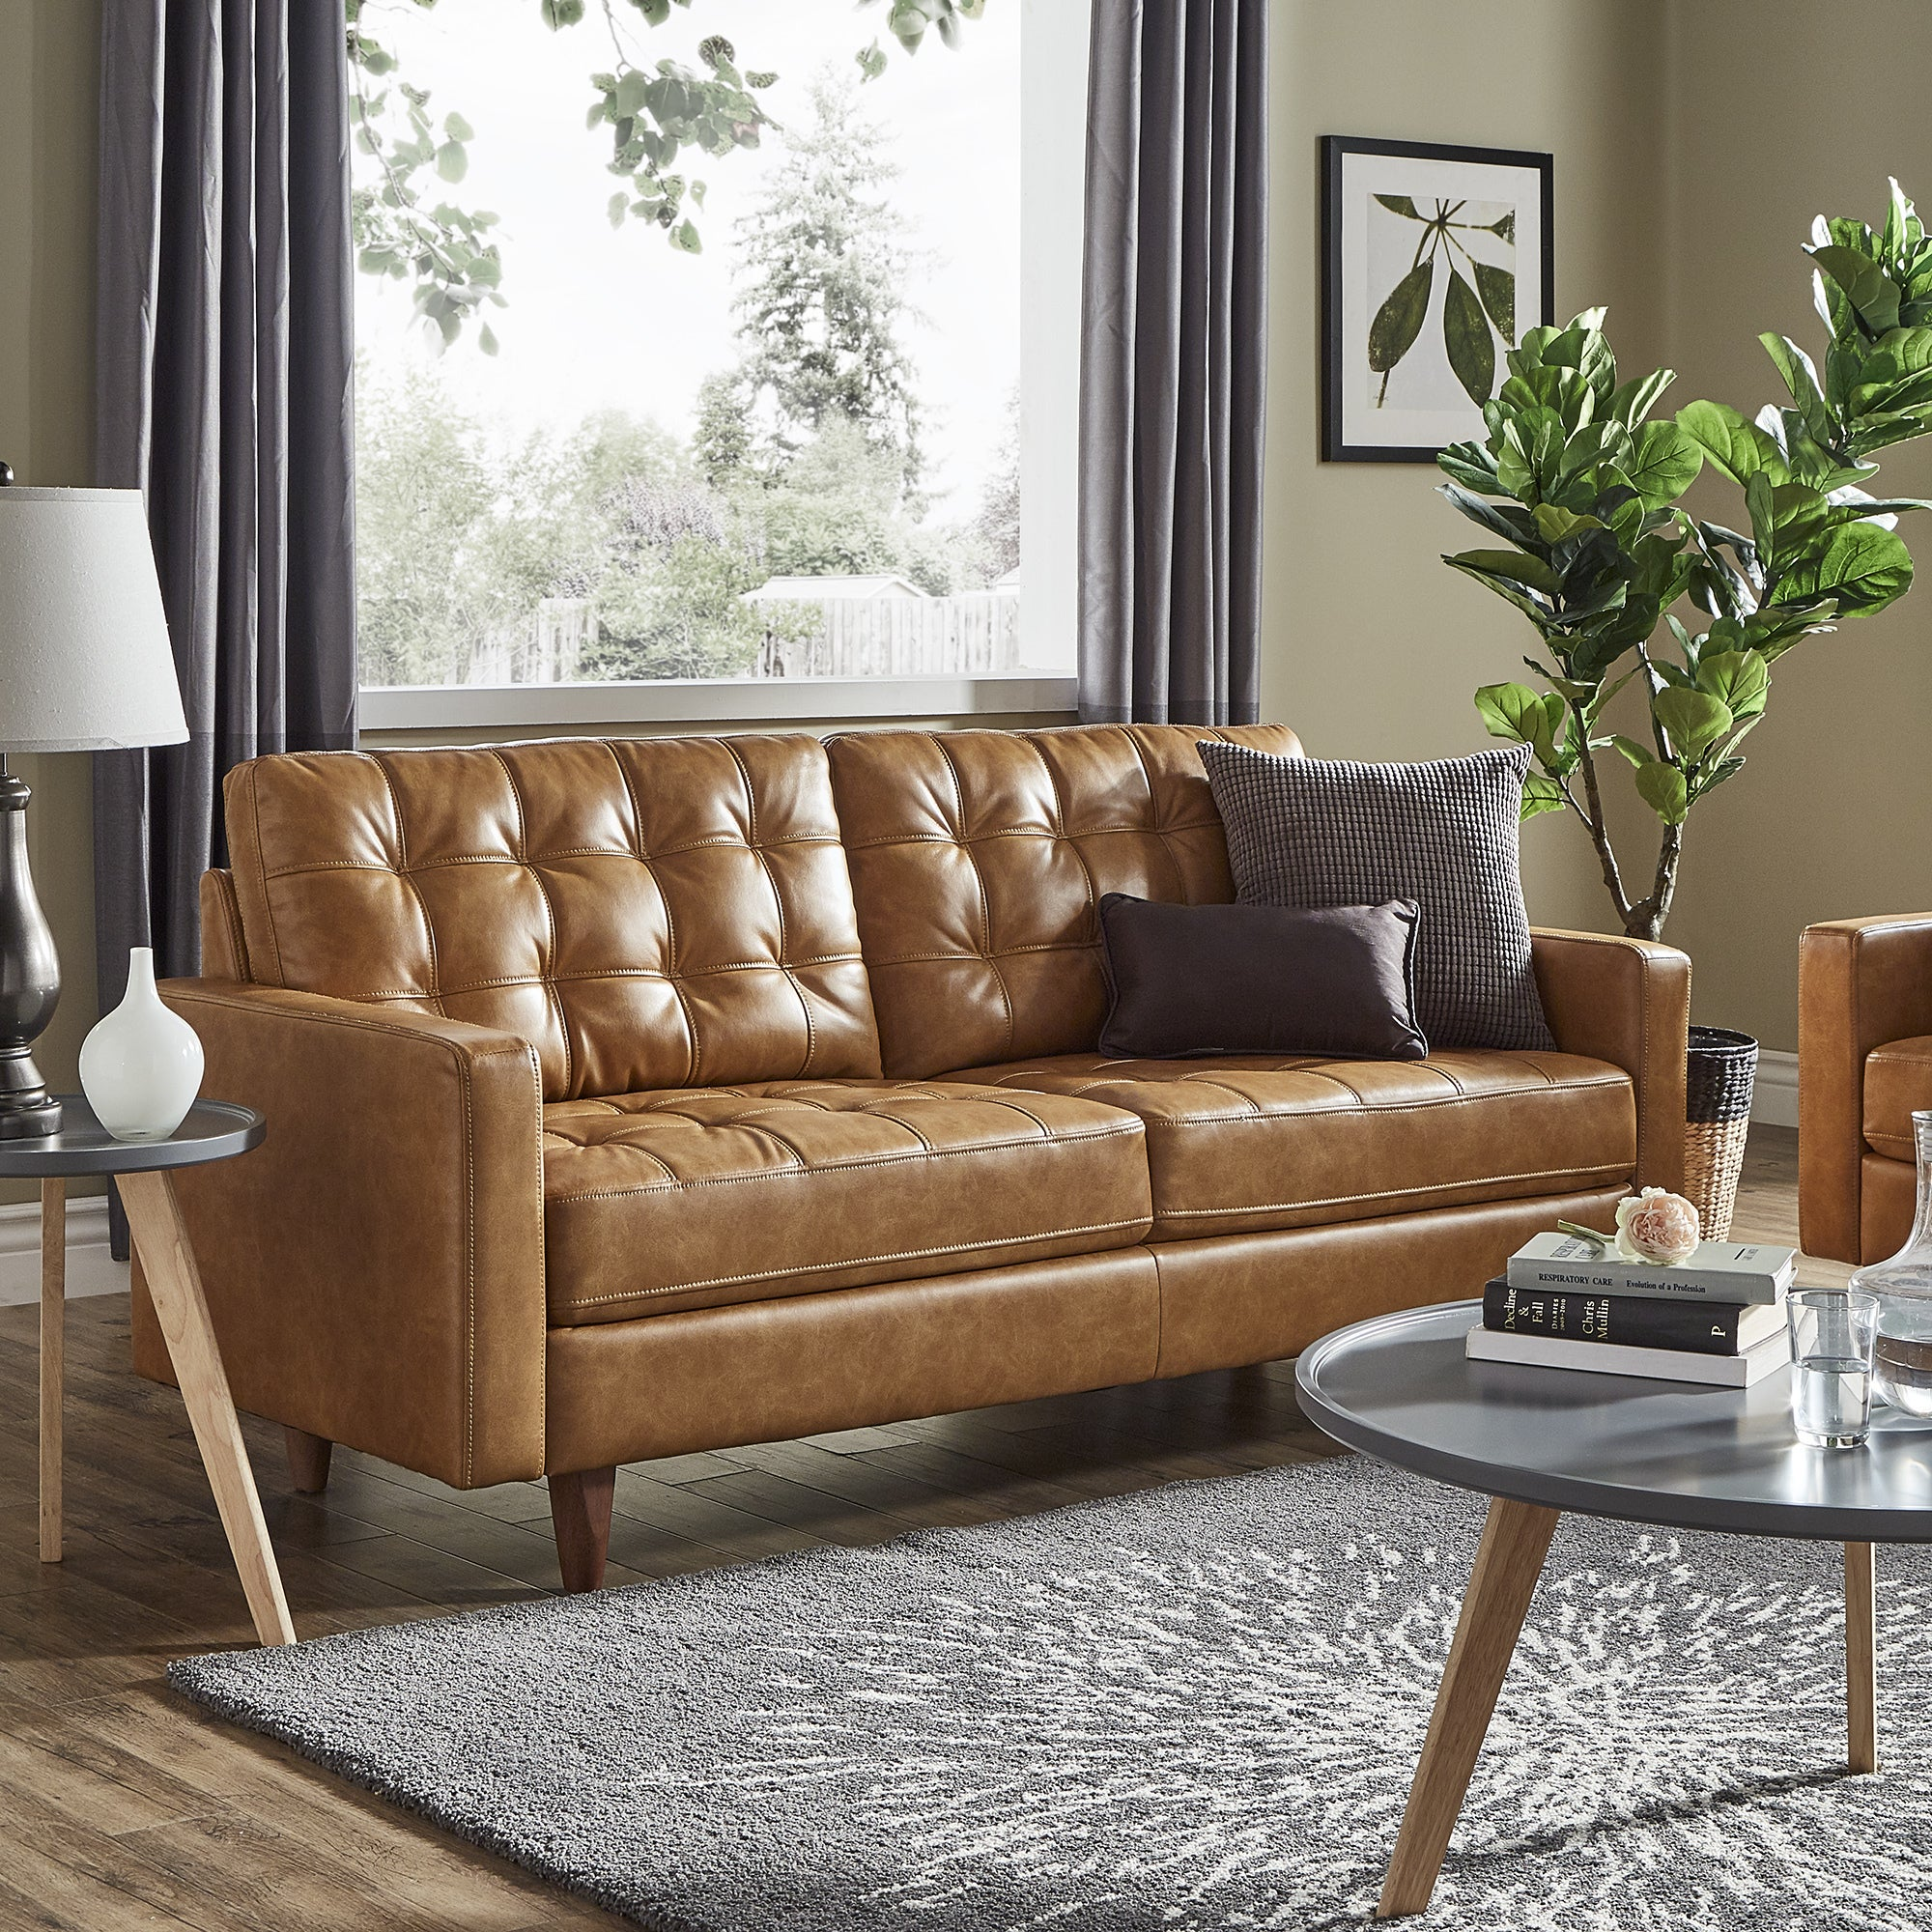 Odin Caramel Leather Gel Sofa by iNSPIRE Q Modern - Free Shipping Today -  Overstock.com - 25686937